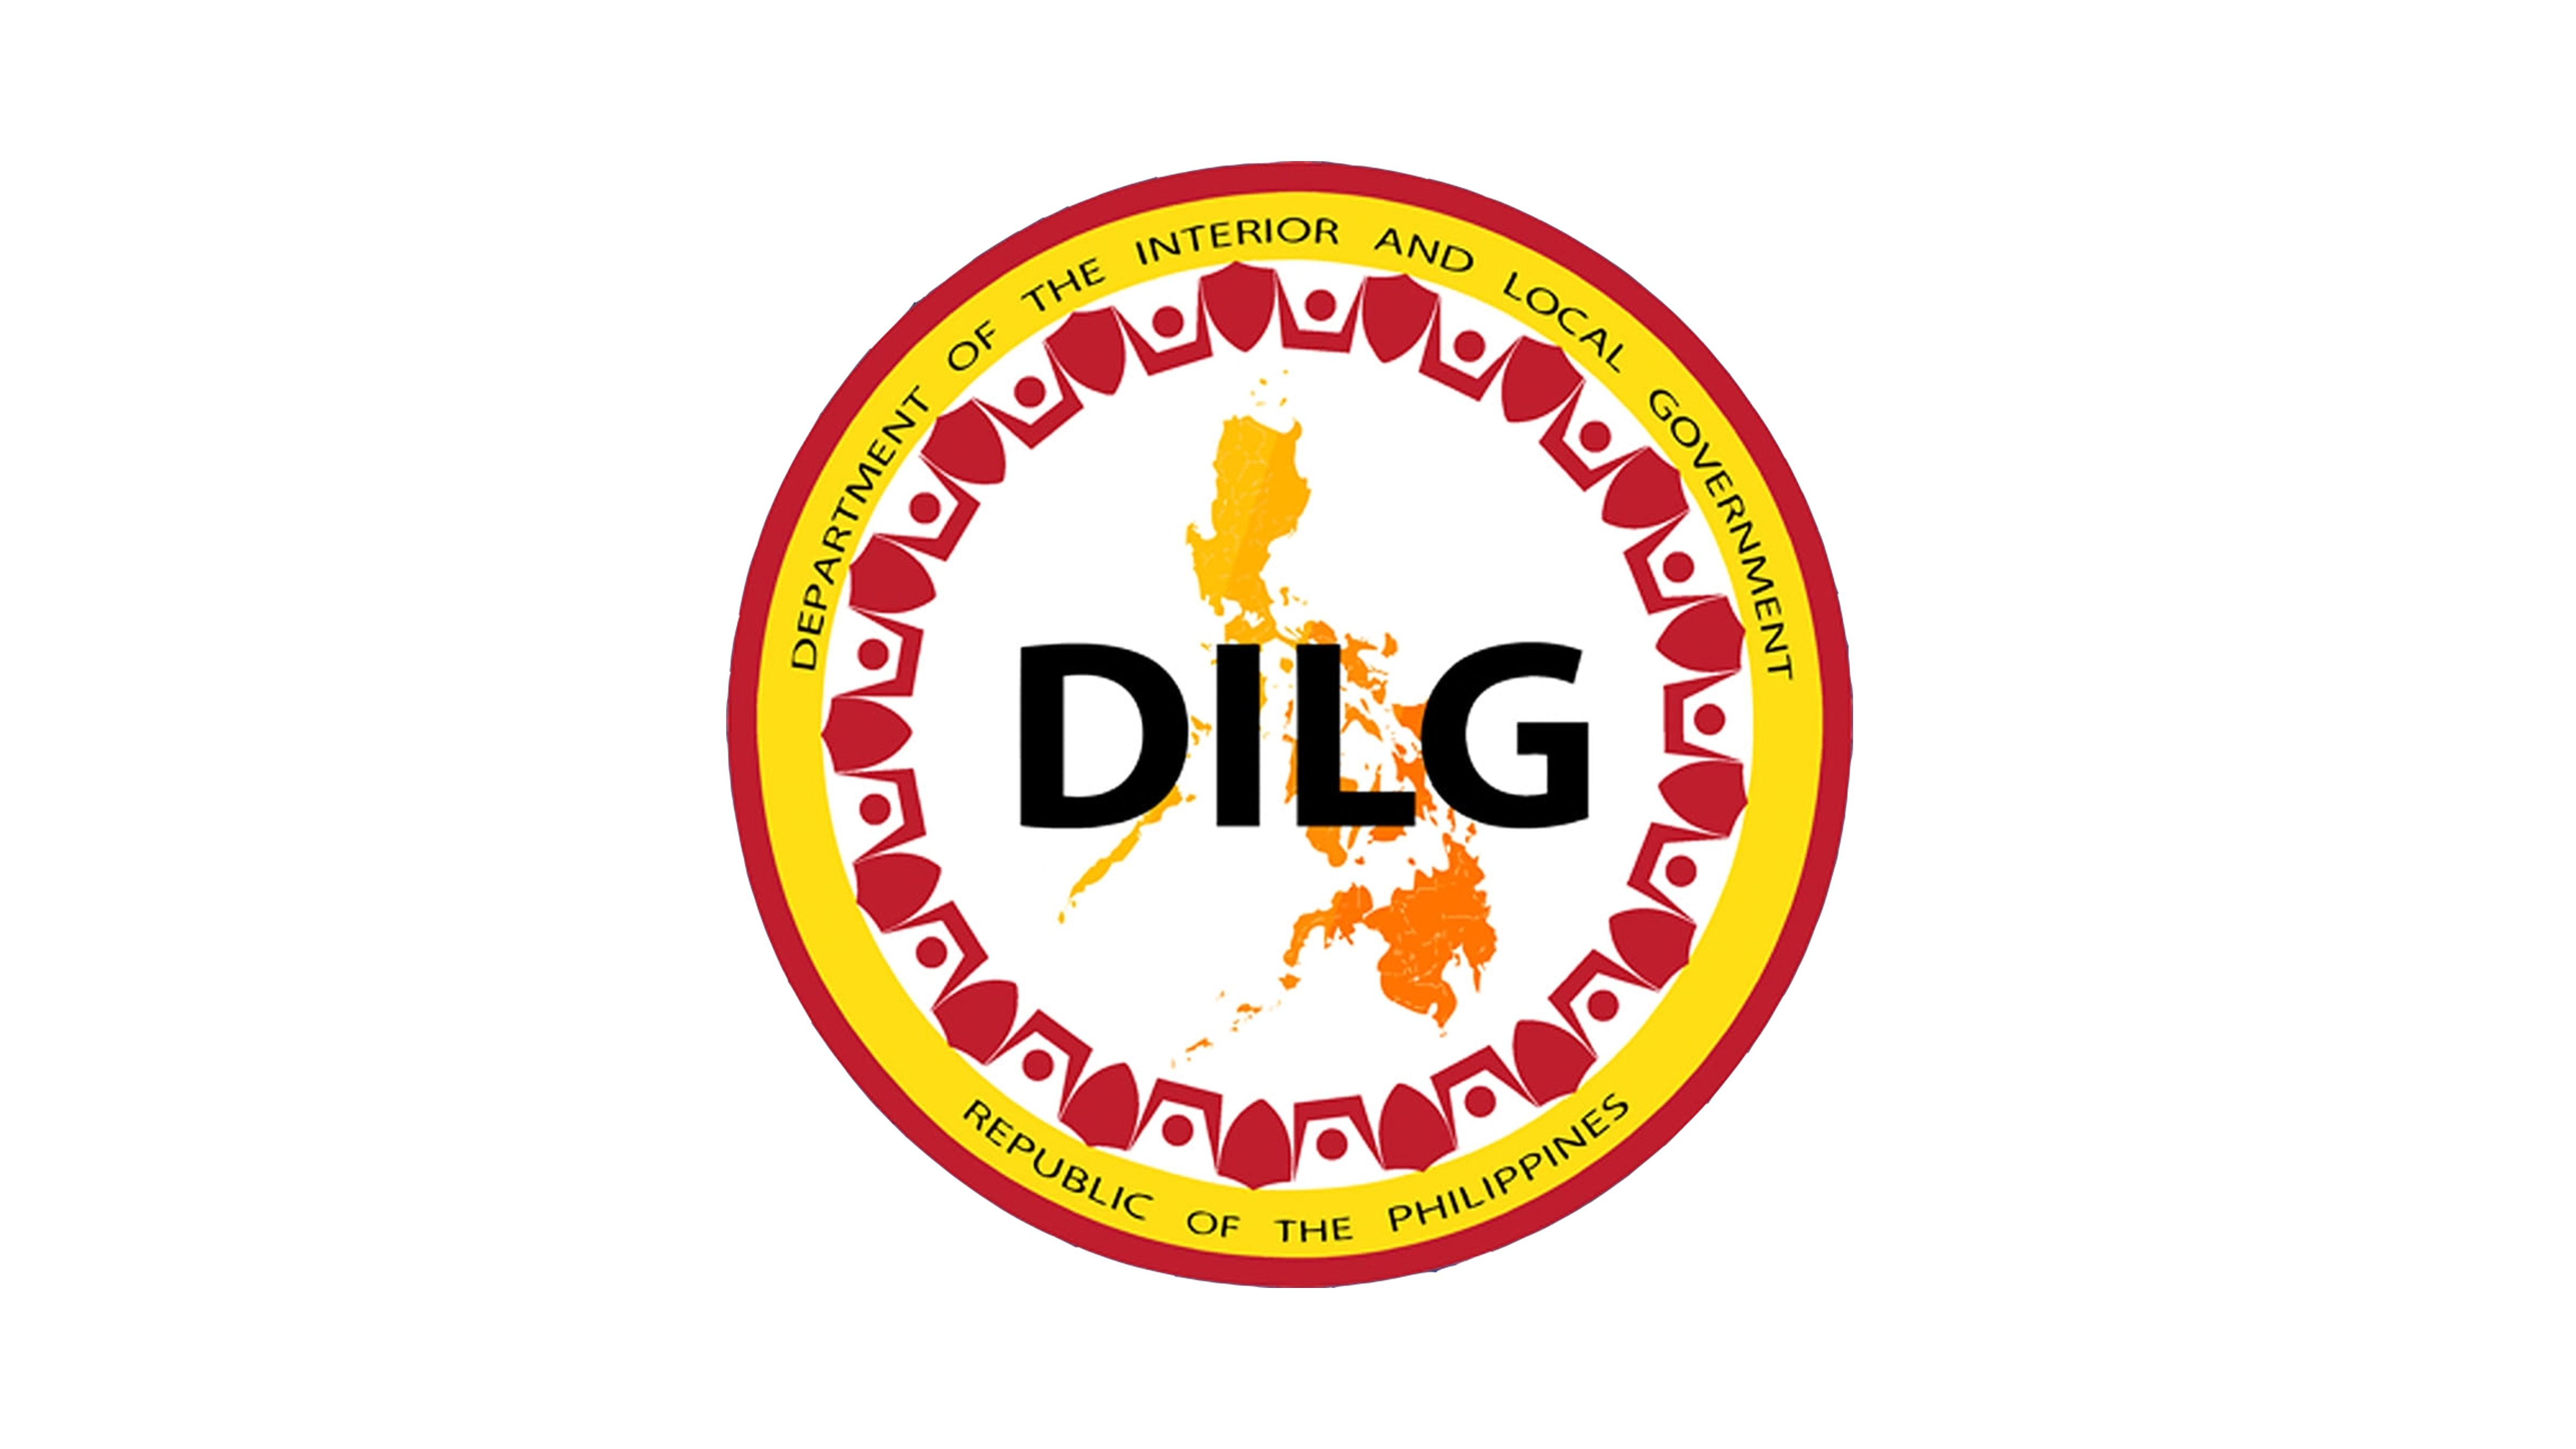 DTI-8 receives Safety Seal Certificate from DILG